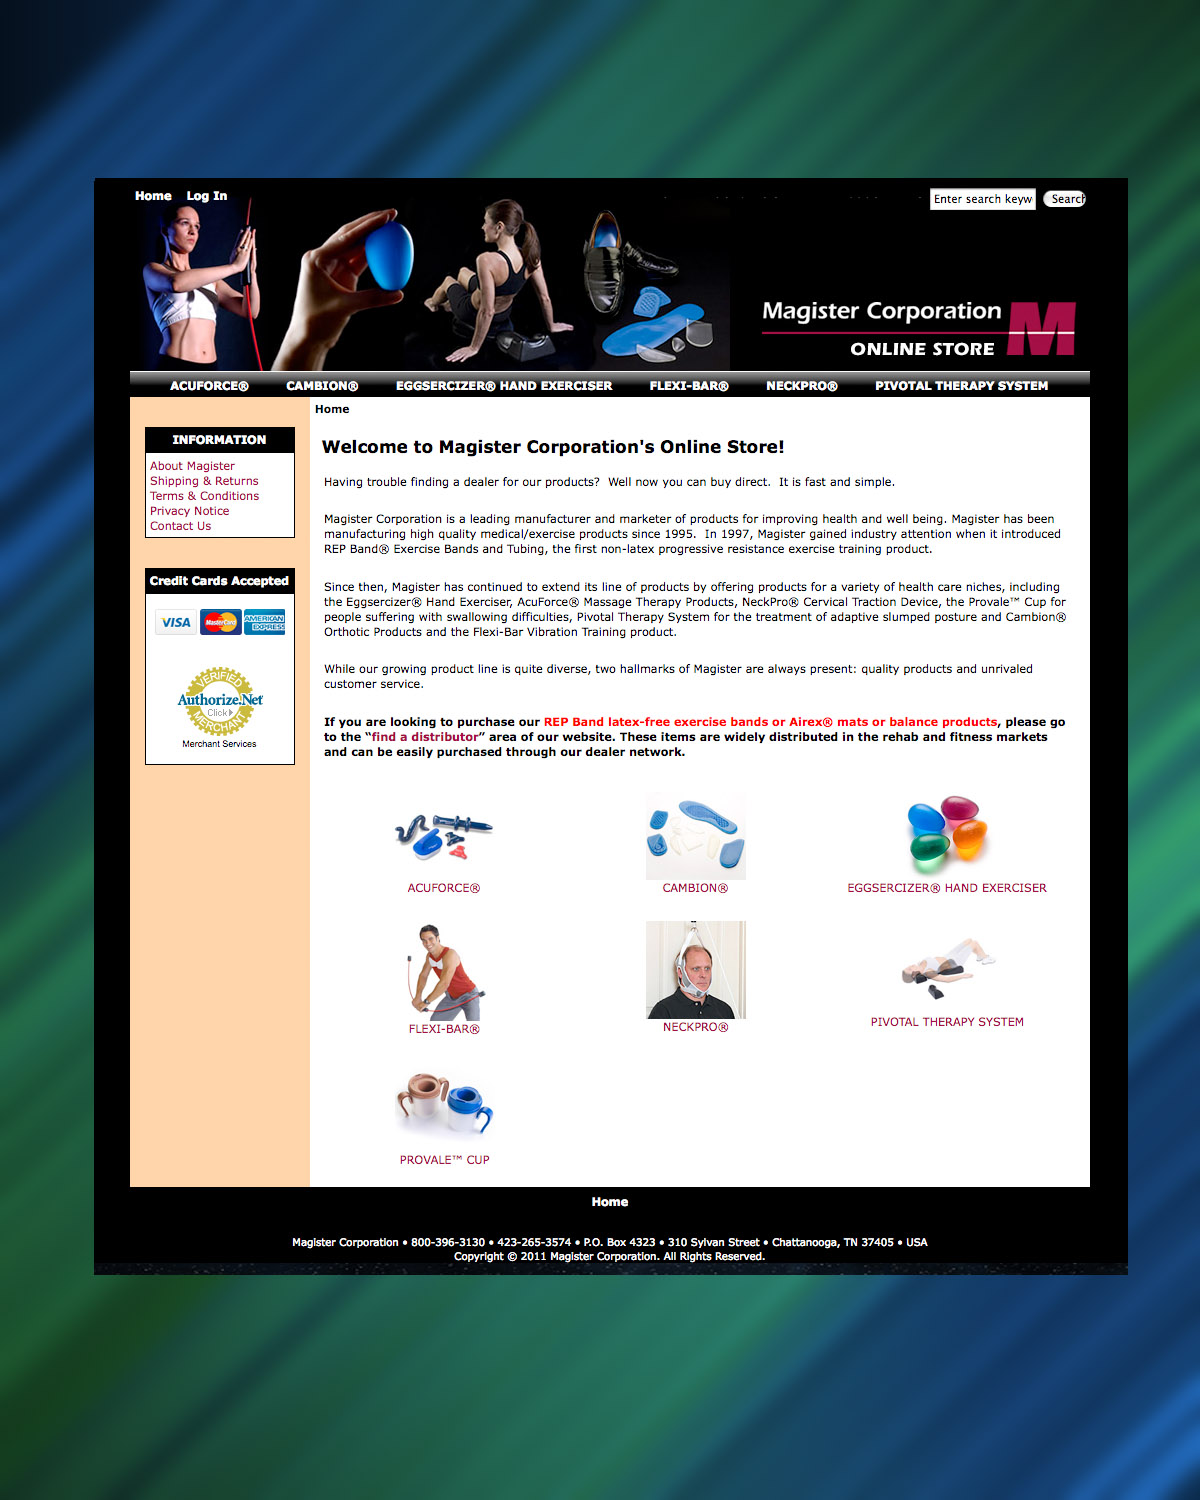 Magister Corporation Launches E-Commerce Site to Promote Wellness Products, MASSAGE Magazine